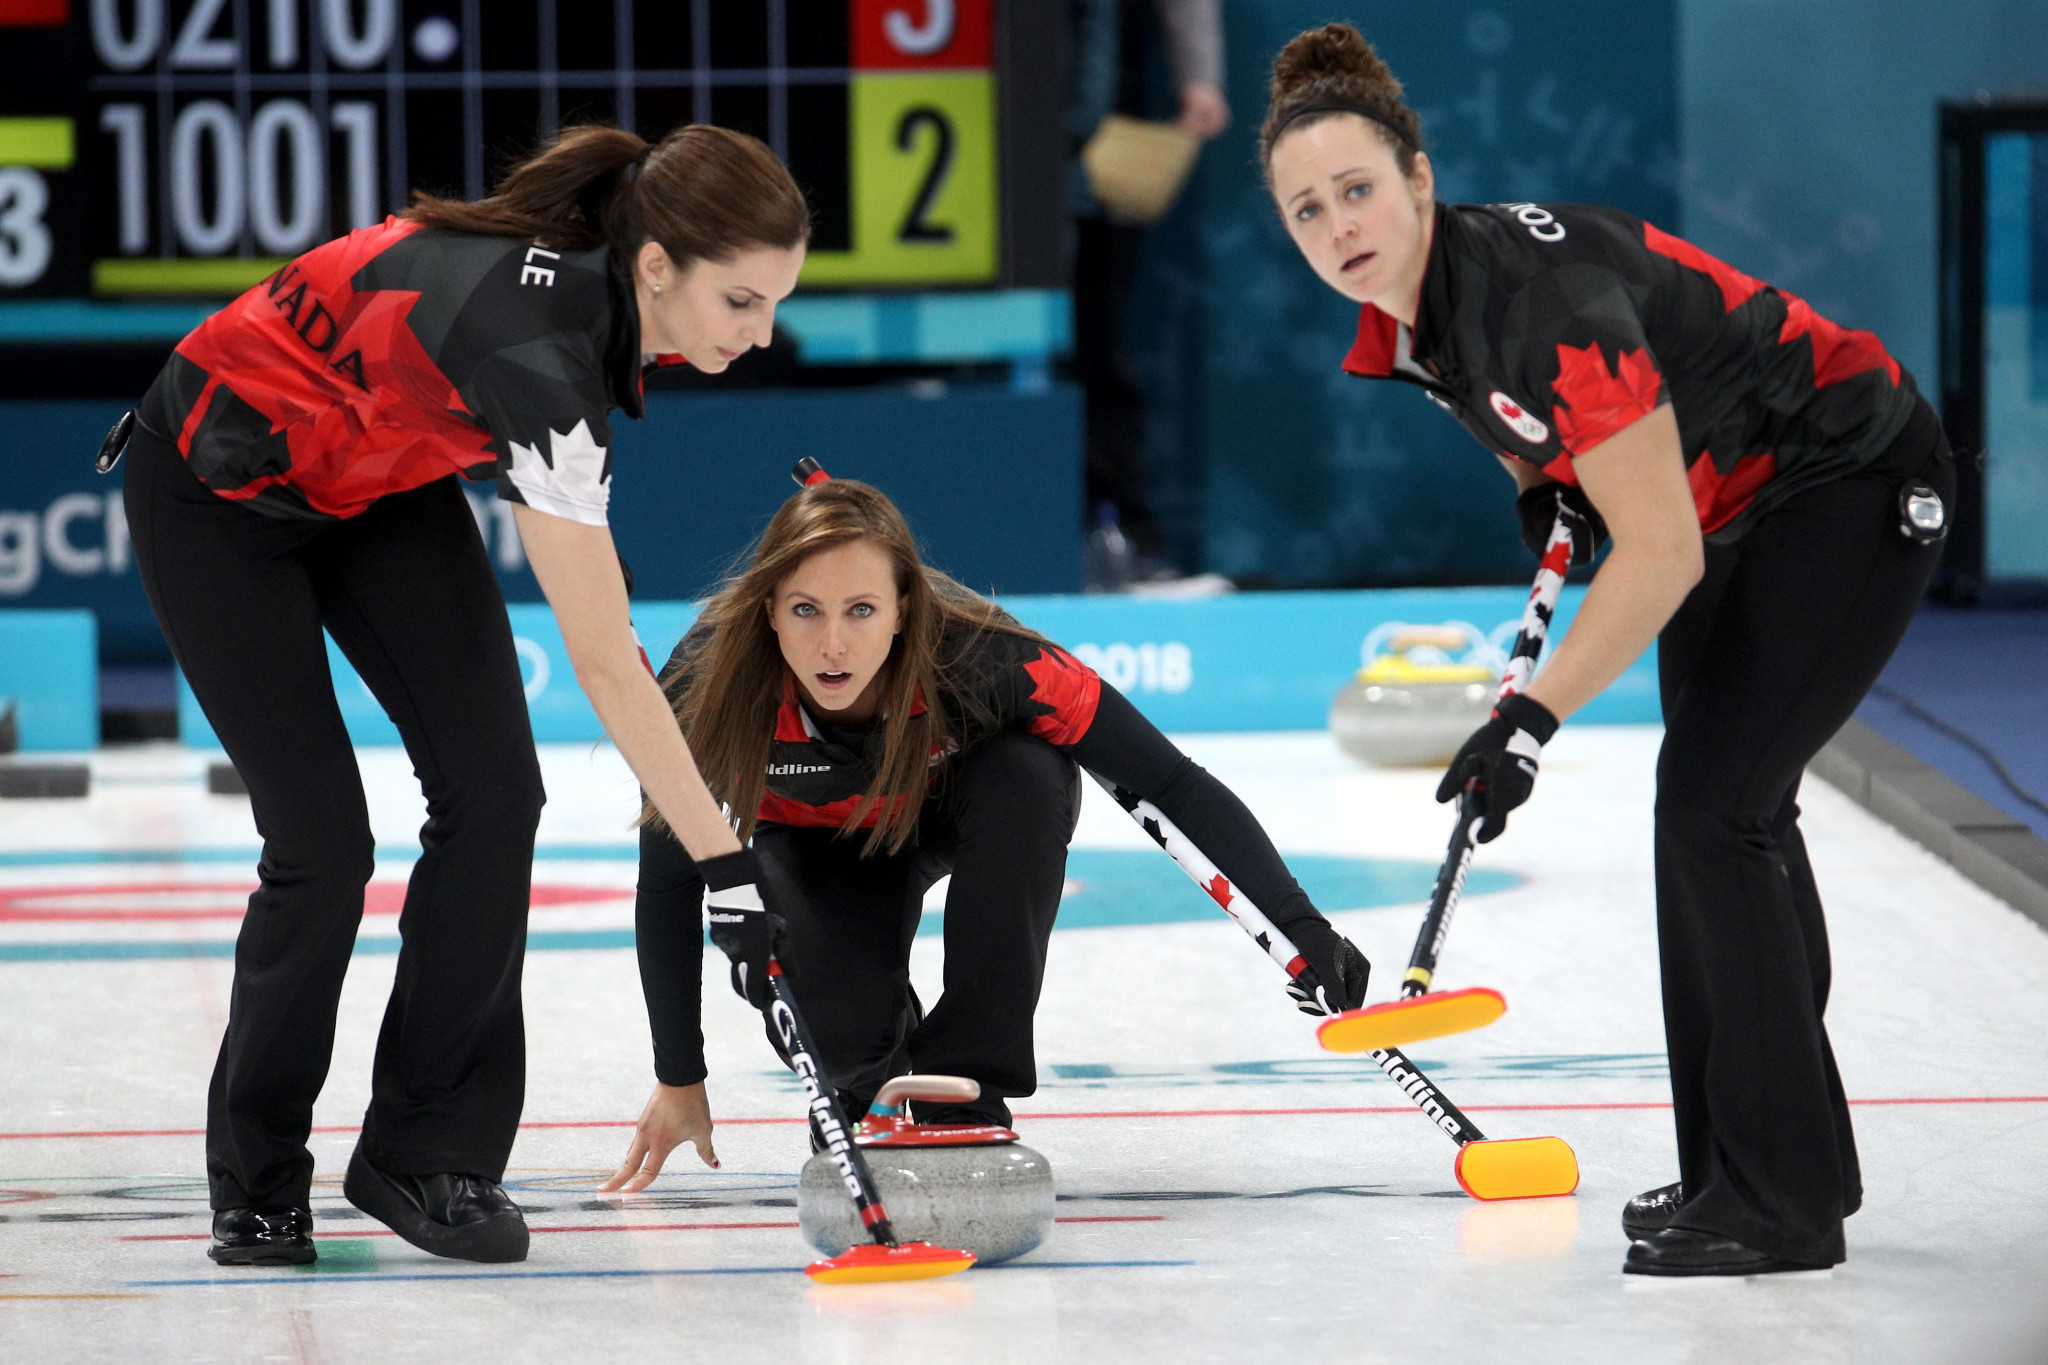 Rachel Homan has added Sarah Wilkes to her team for next season ©Getty Images